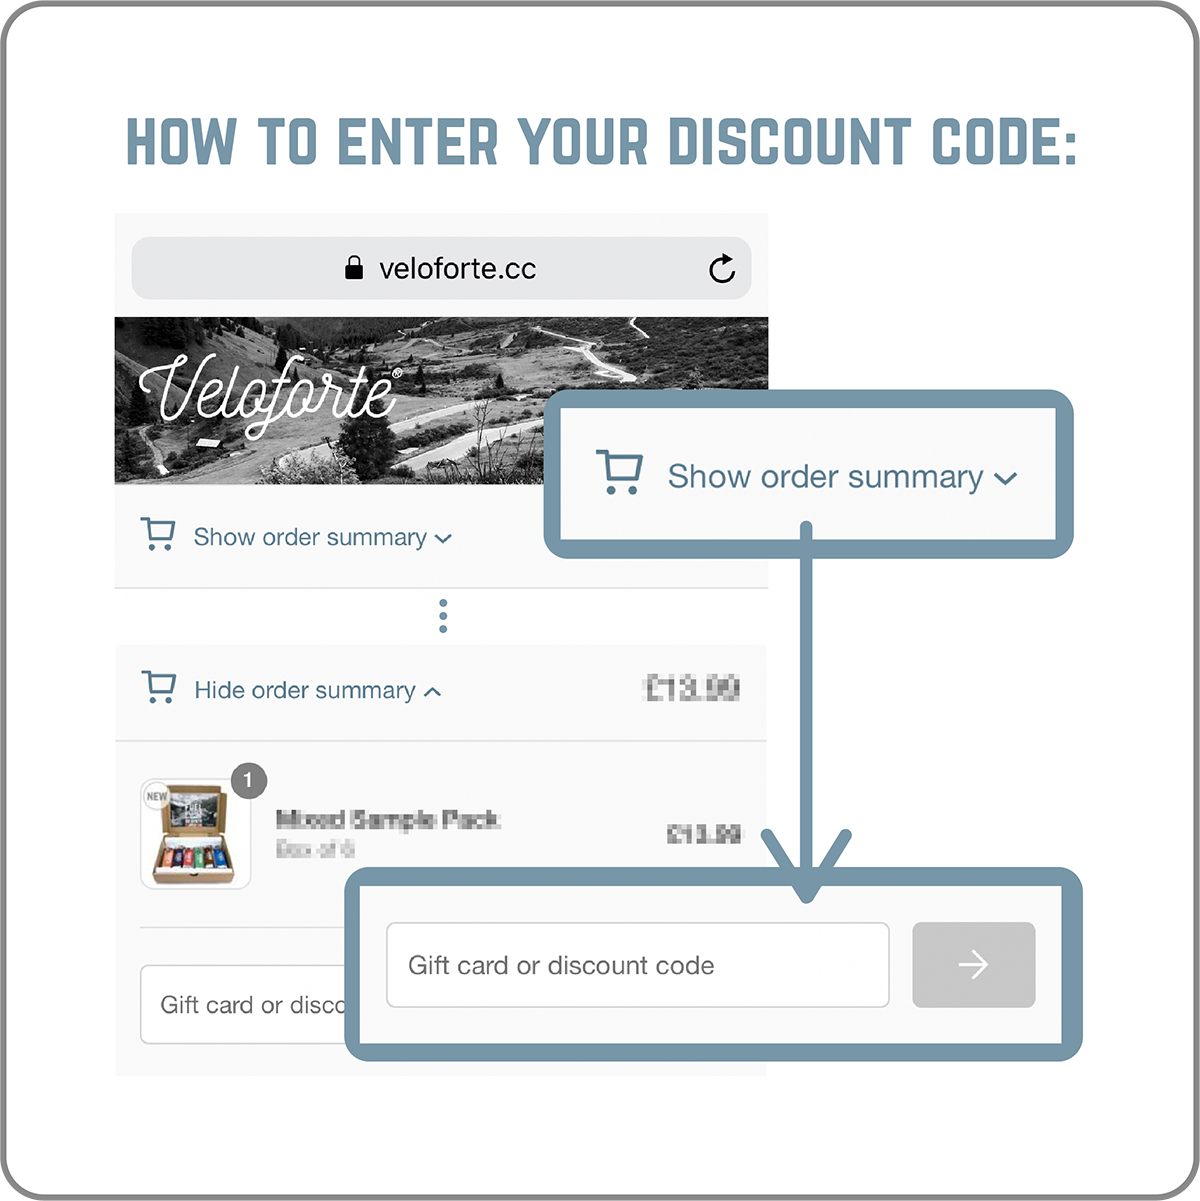 How to enter your discount code